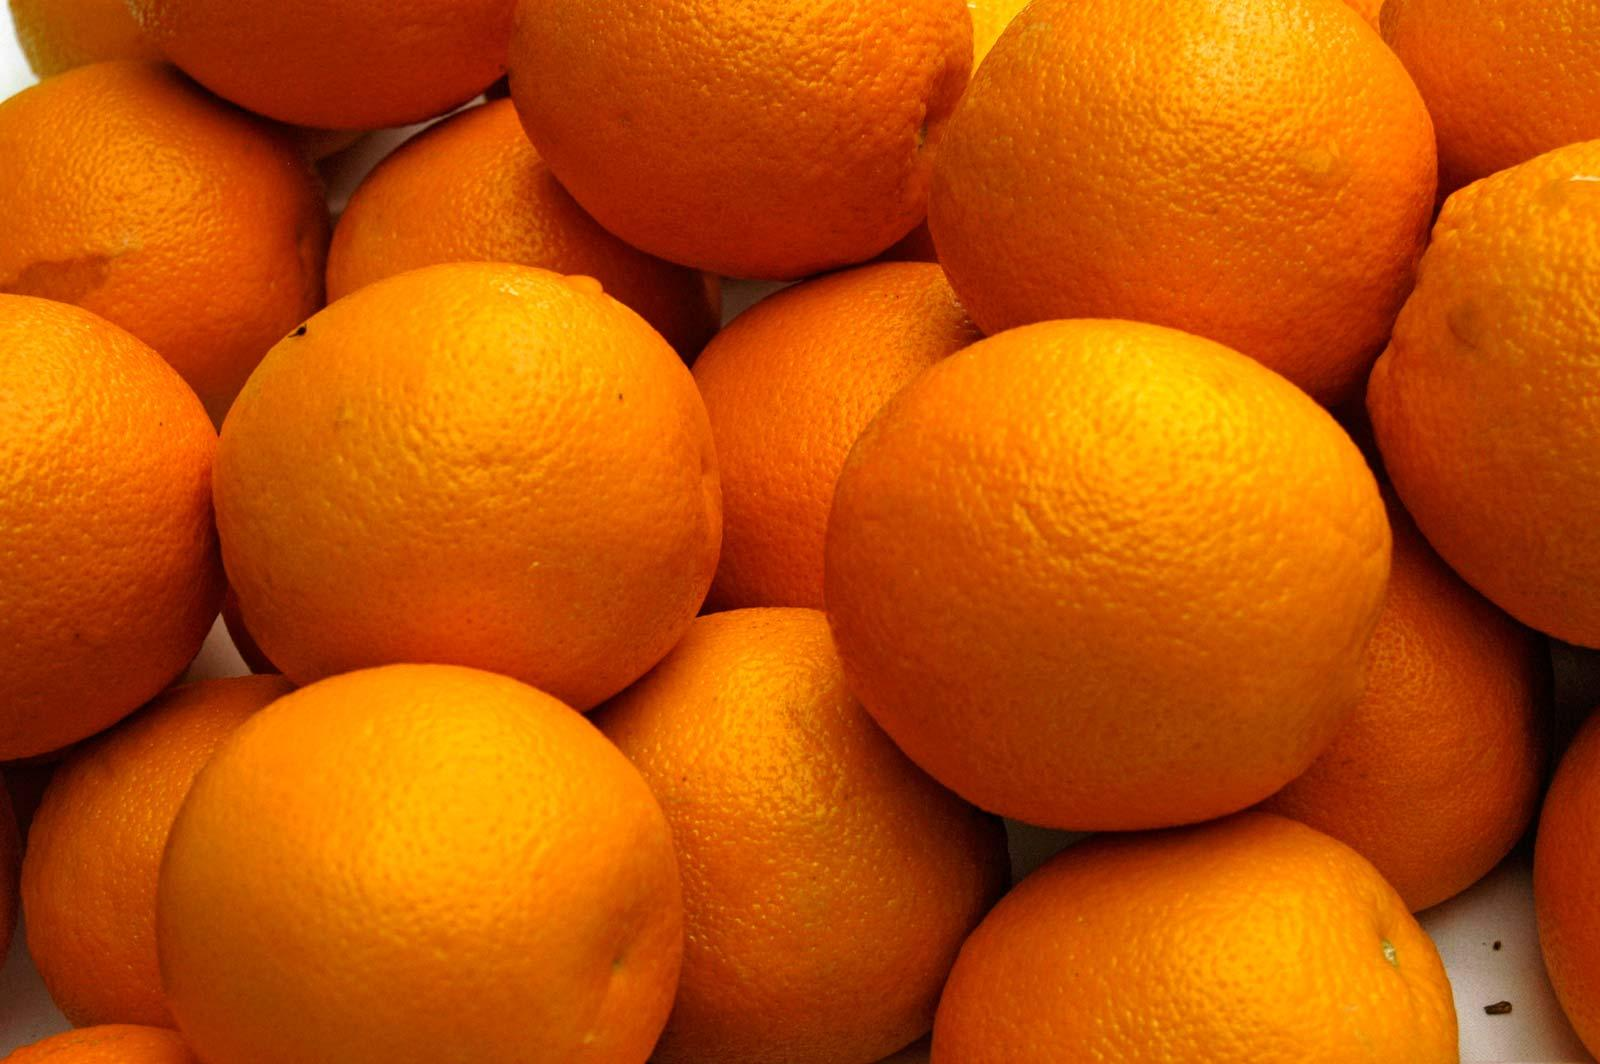 Citrus juice helps your eyes fucntion well